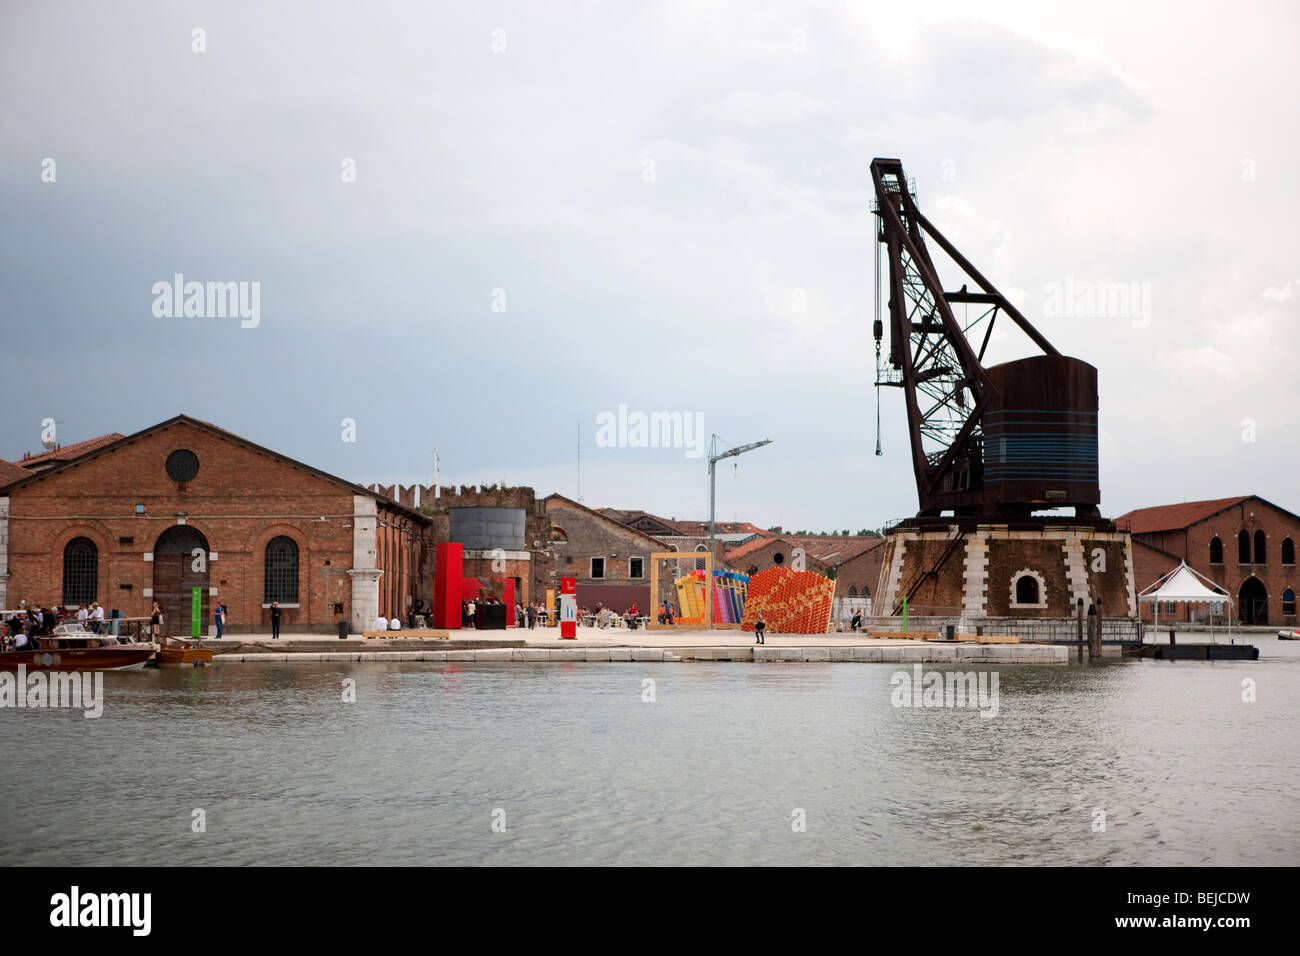 Arsenale, 53rd Biennial Exhibition of Modern Art, Venice, Veneto, Italy - Stock Image